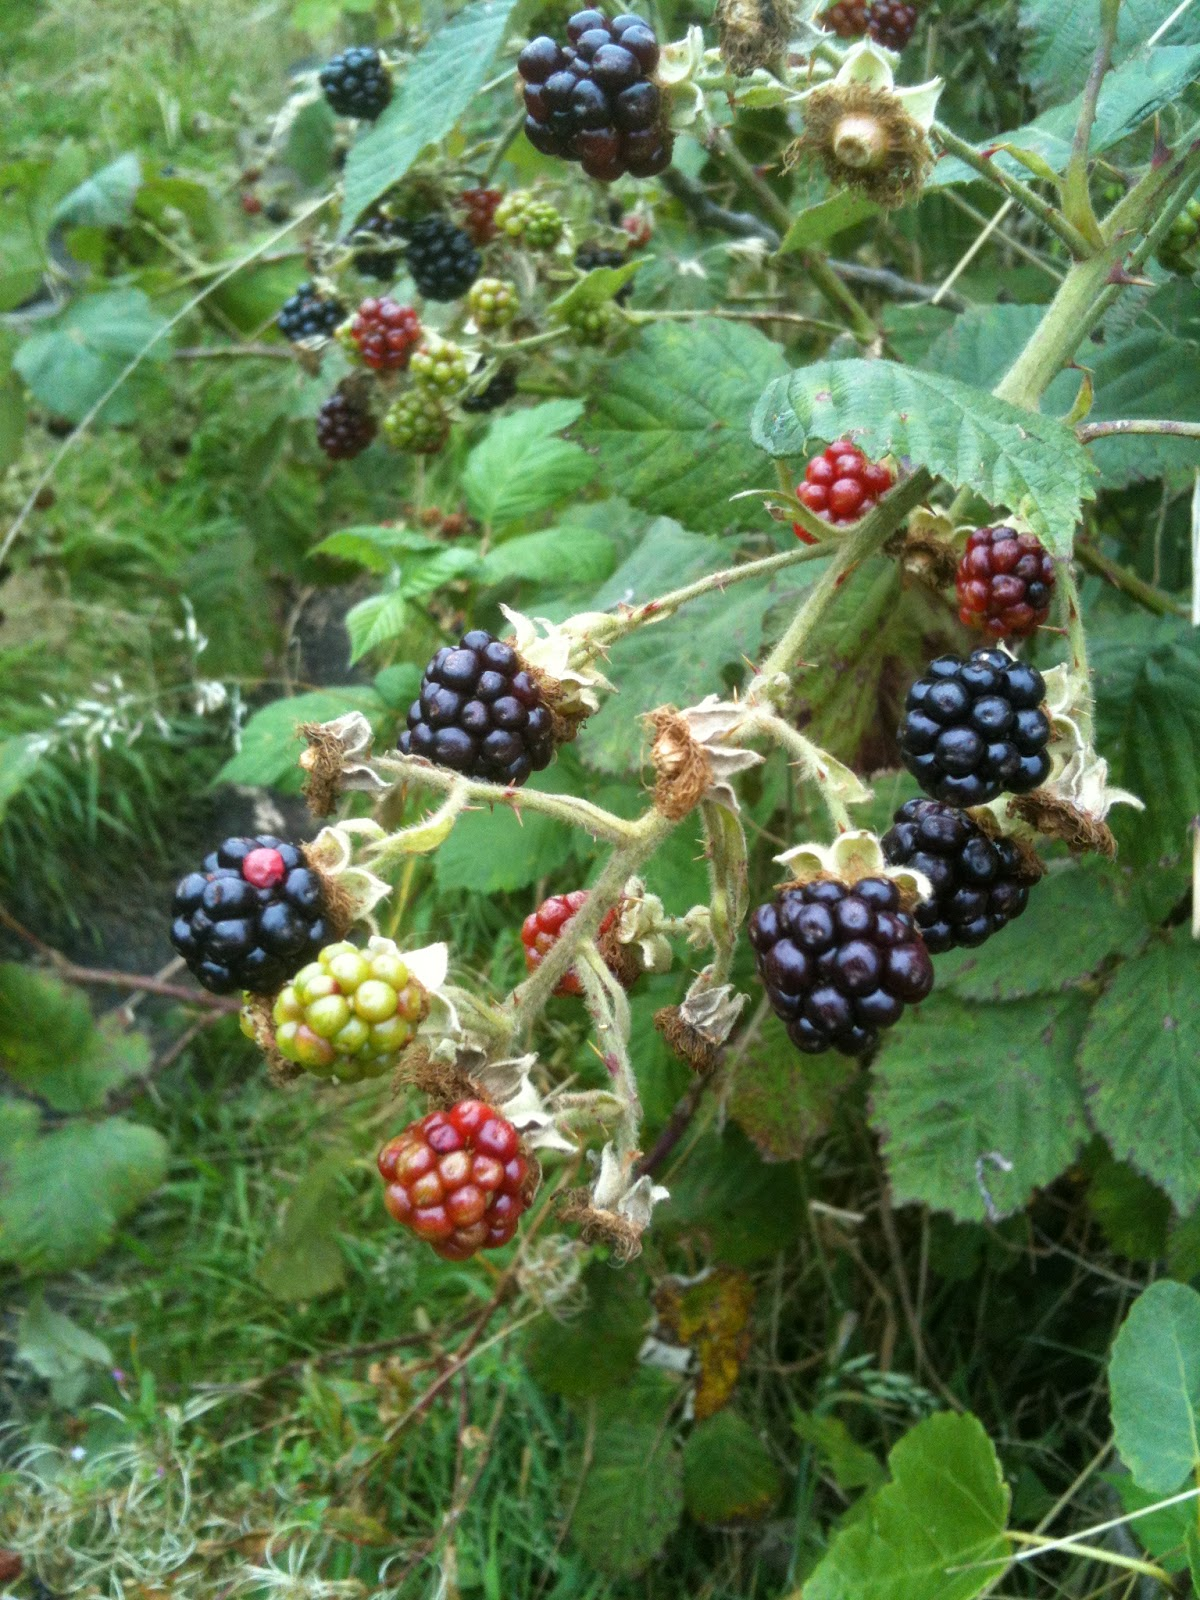 Growing blackberries.